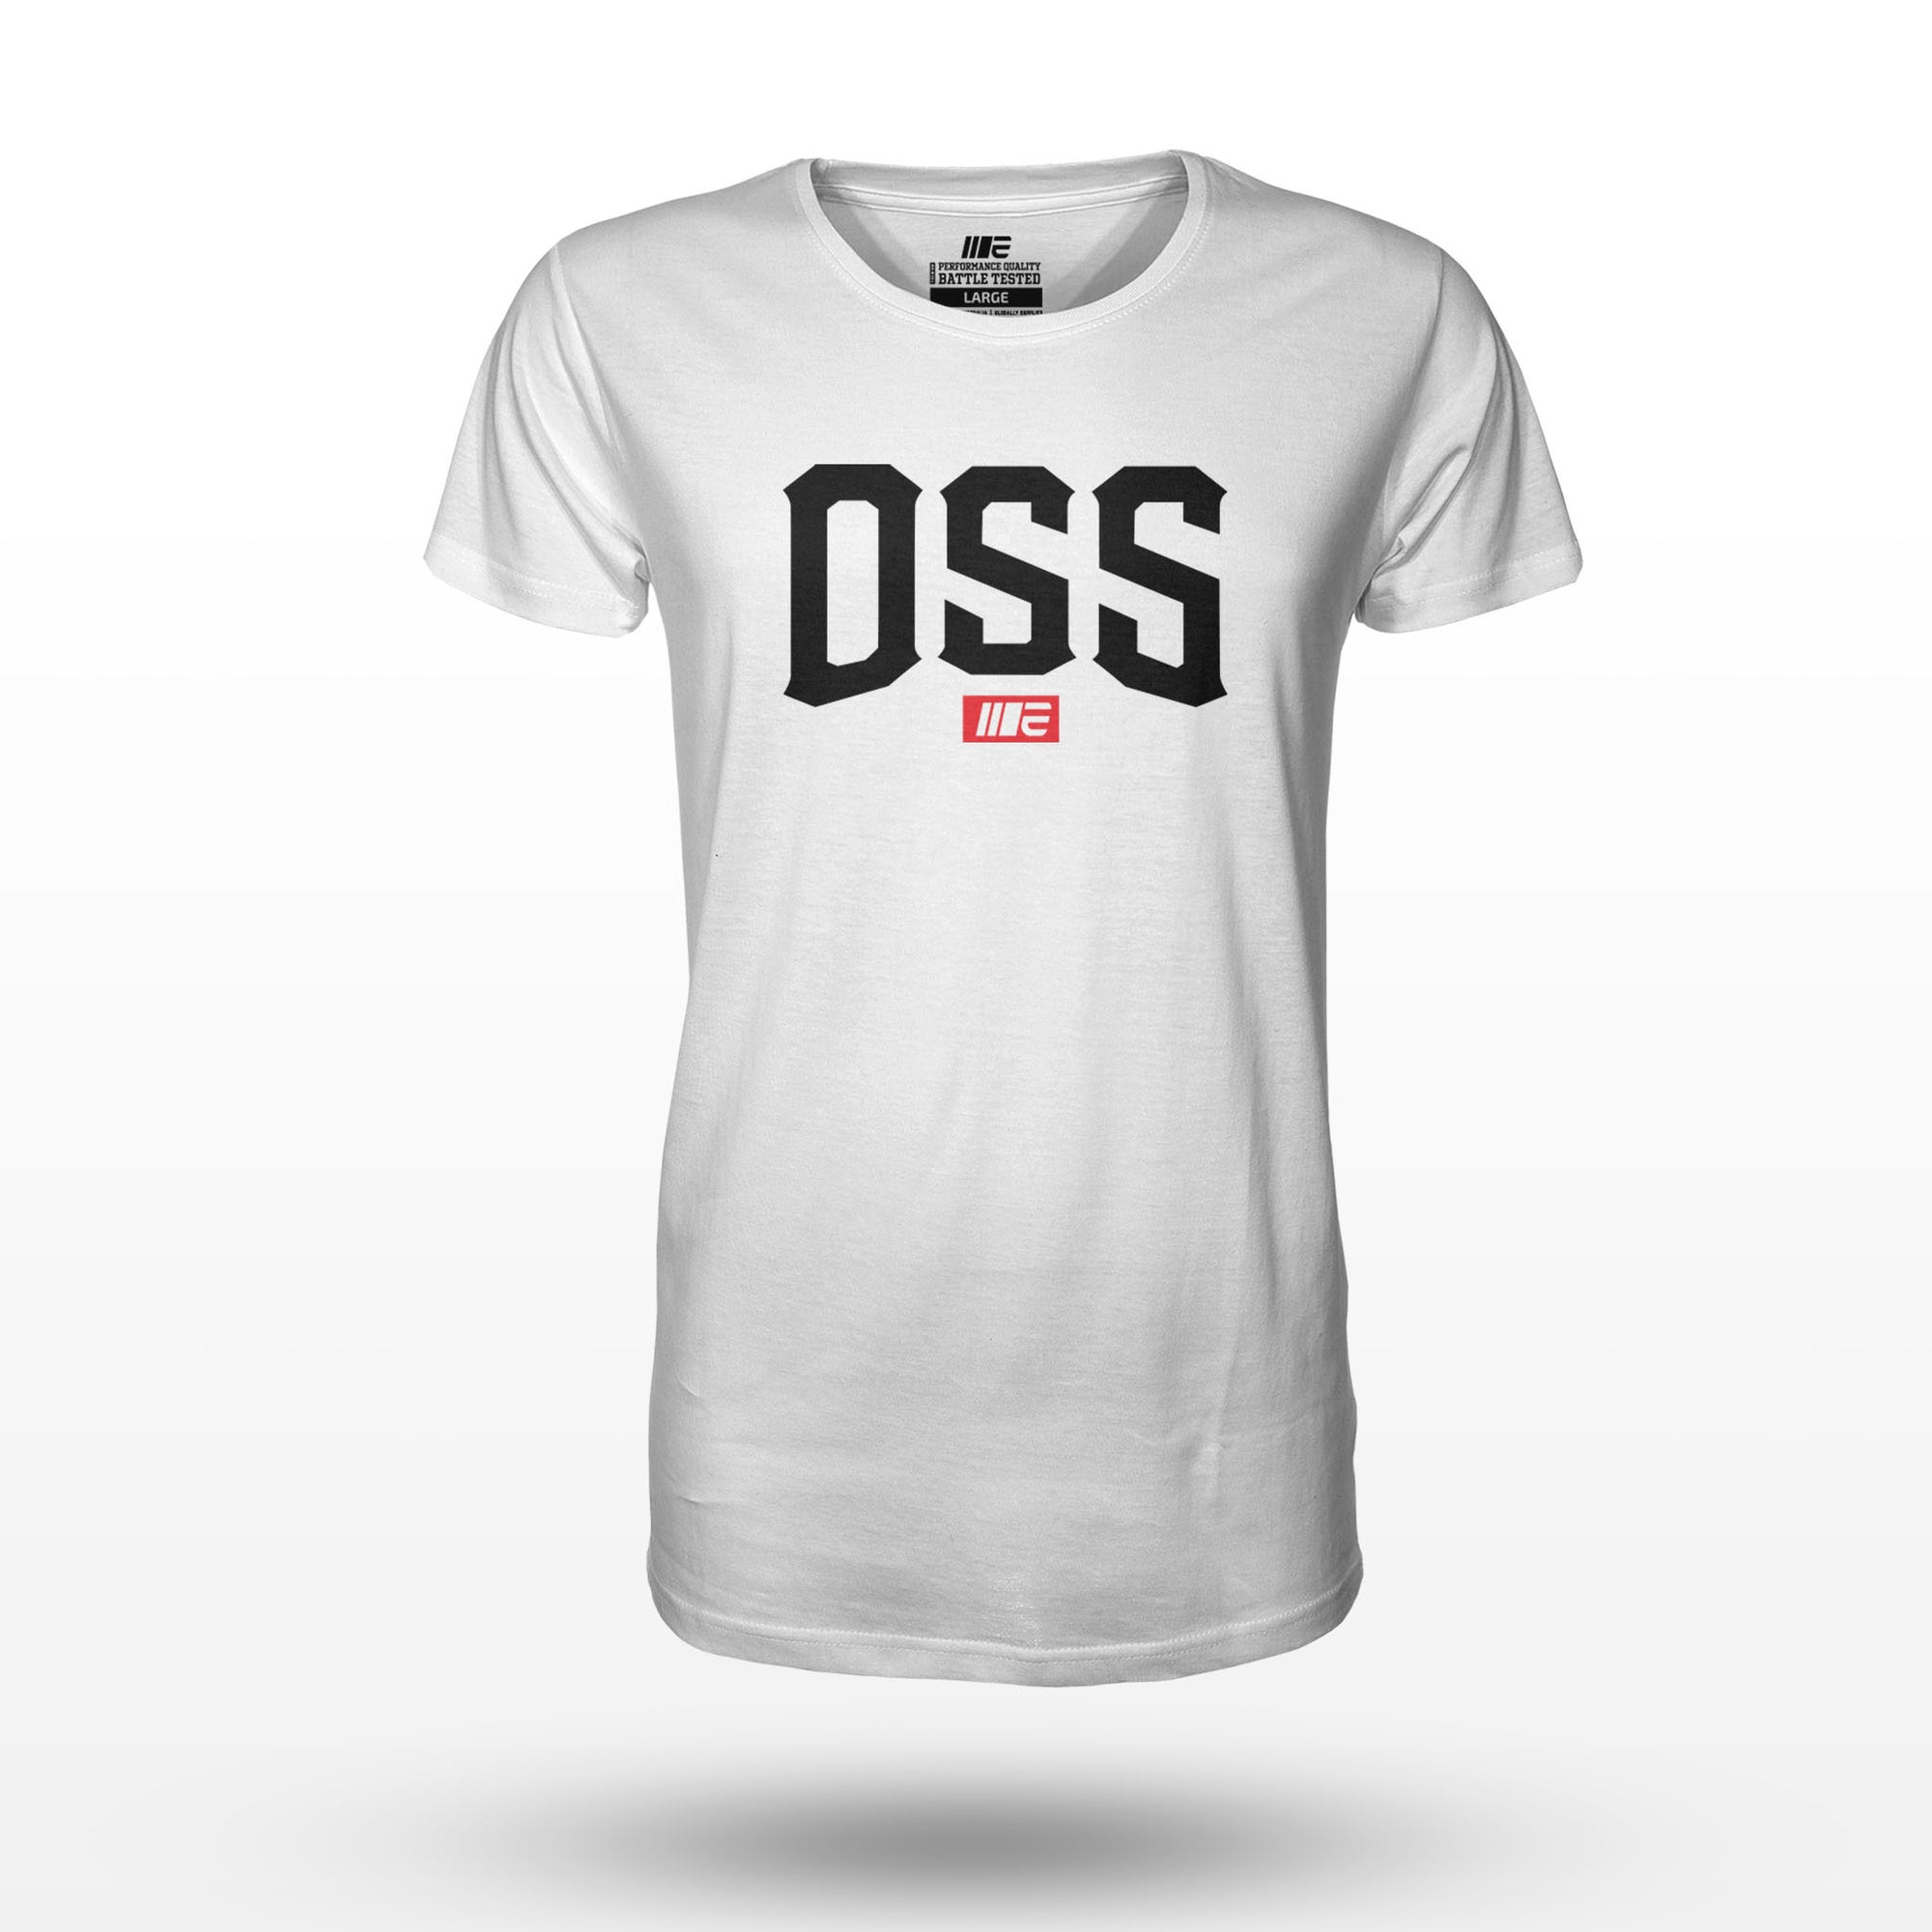 Z - Engage OSS T-Shirt